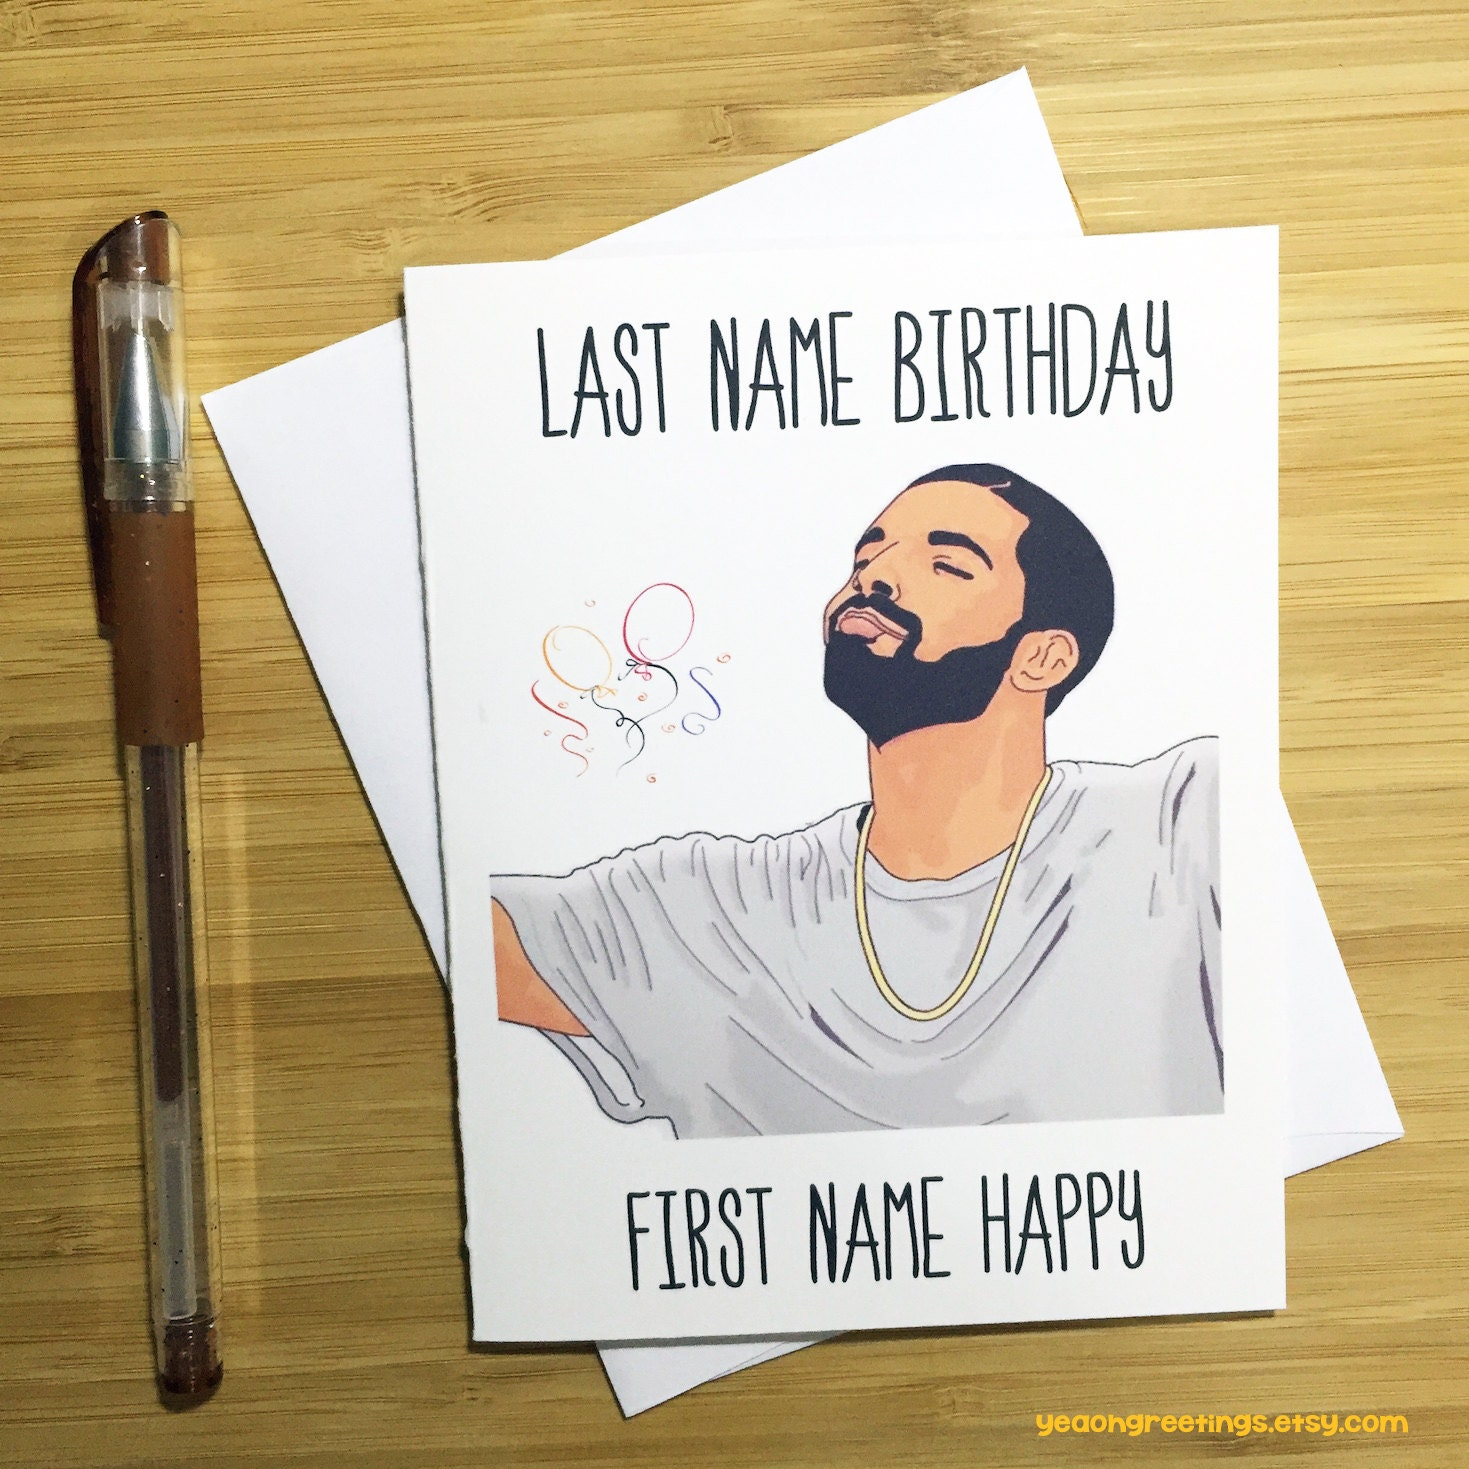 Last name birthday first name happy birthday card funny zoom kristyandbryce Gallery